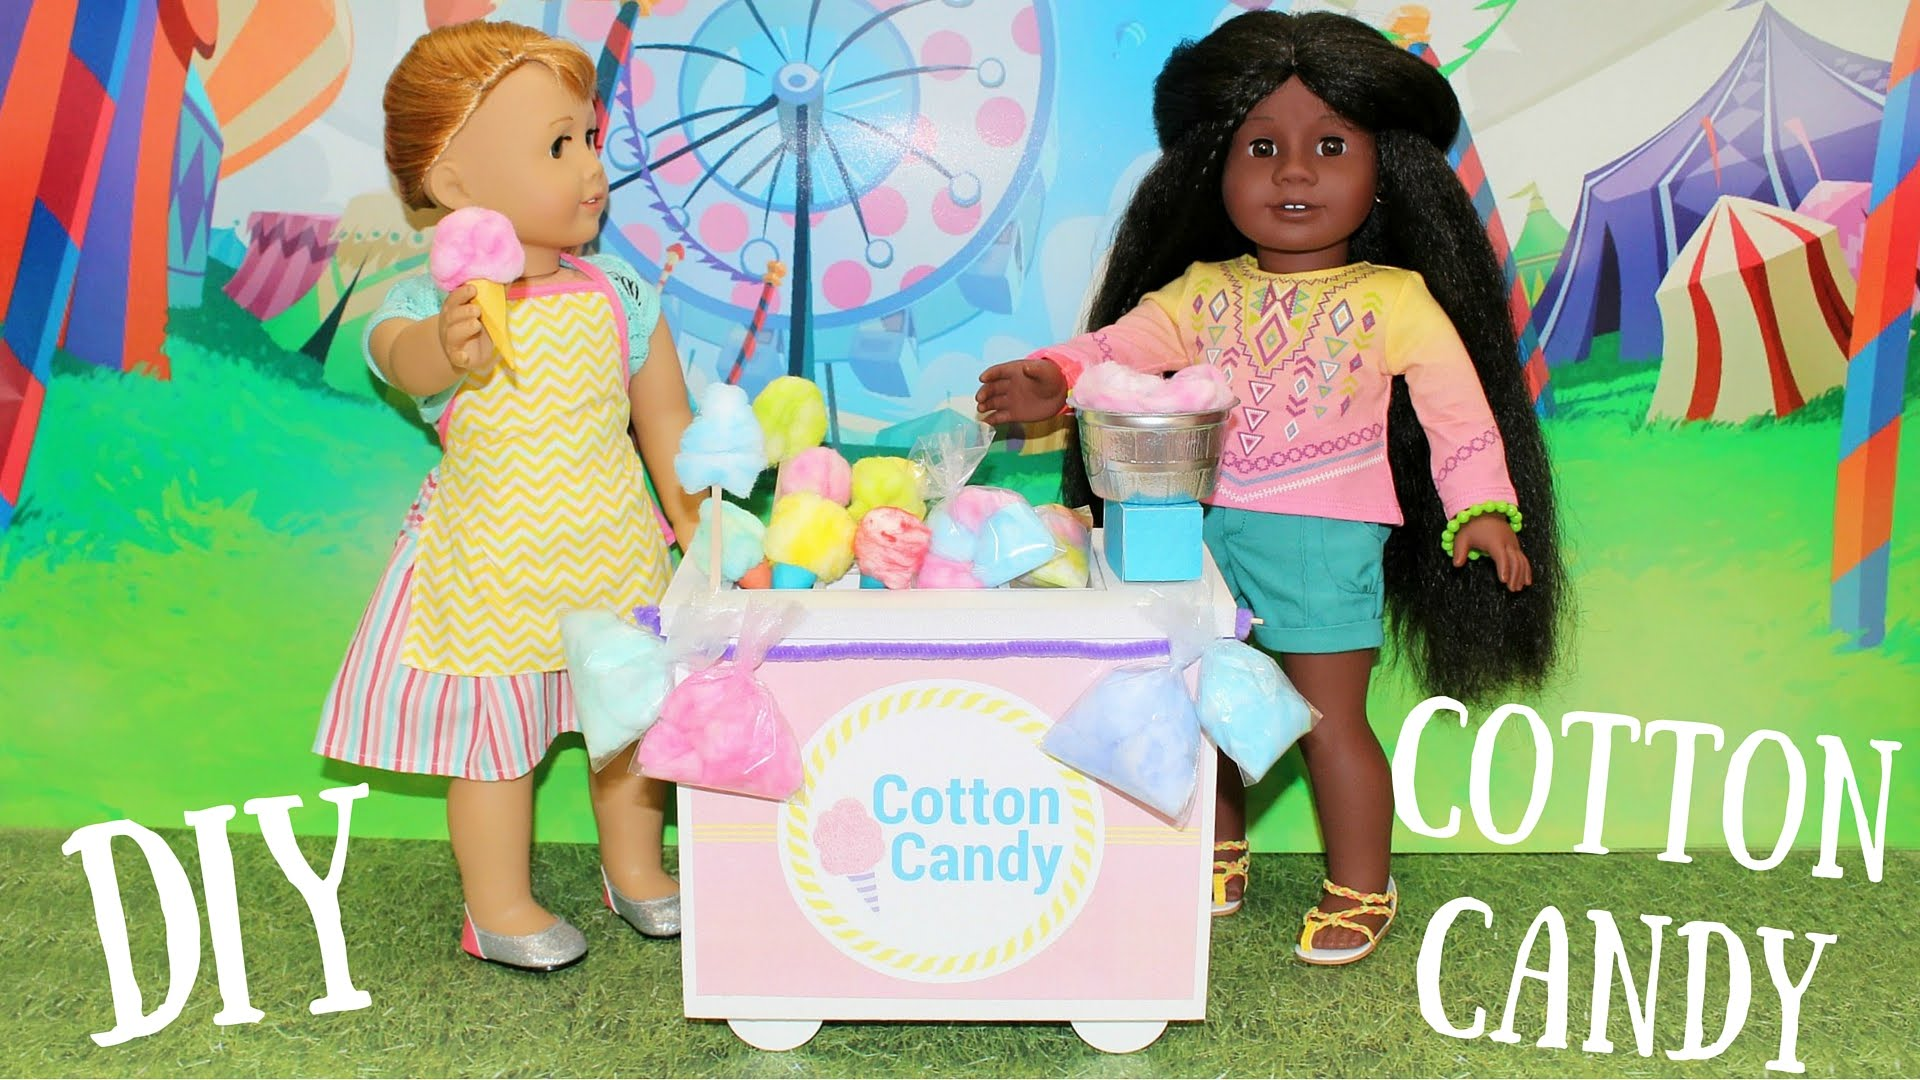 Doll Cotton Candy Diy American Girl Doll Crafts Onpassive Review